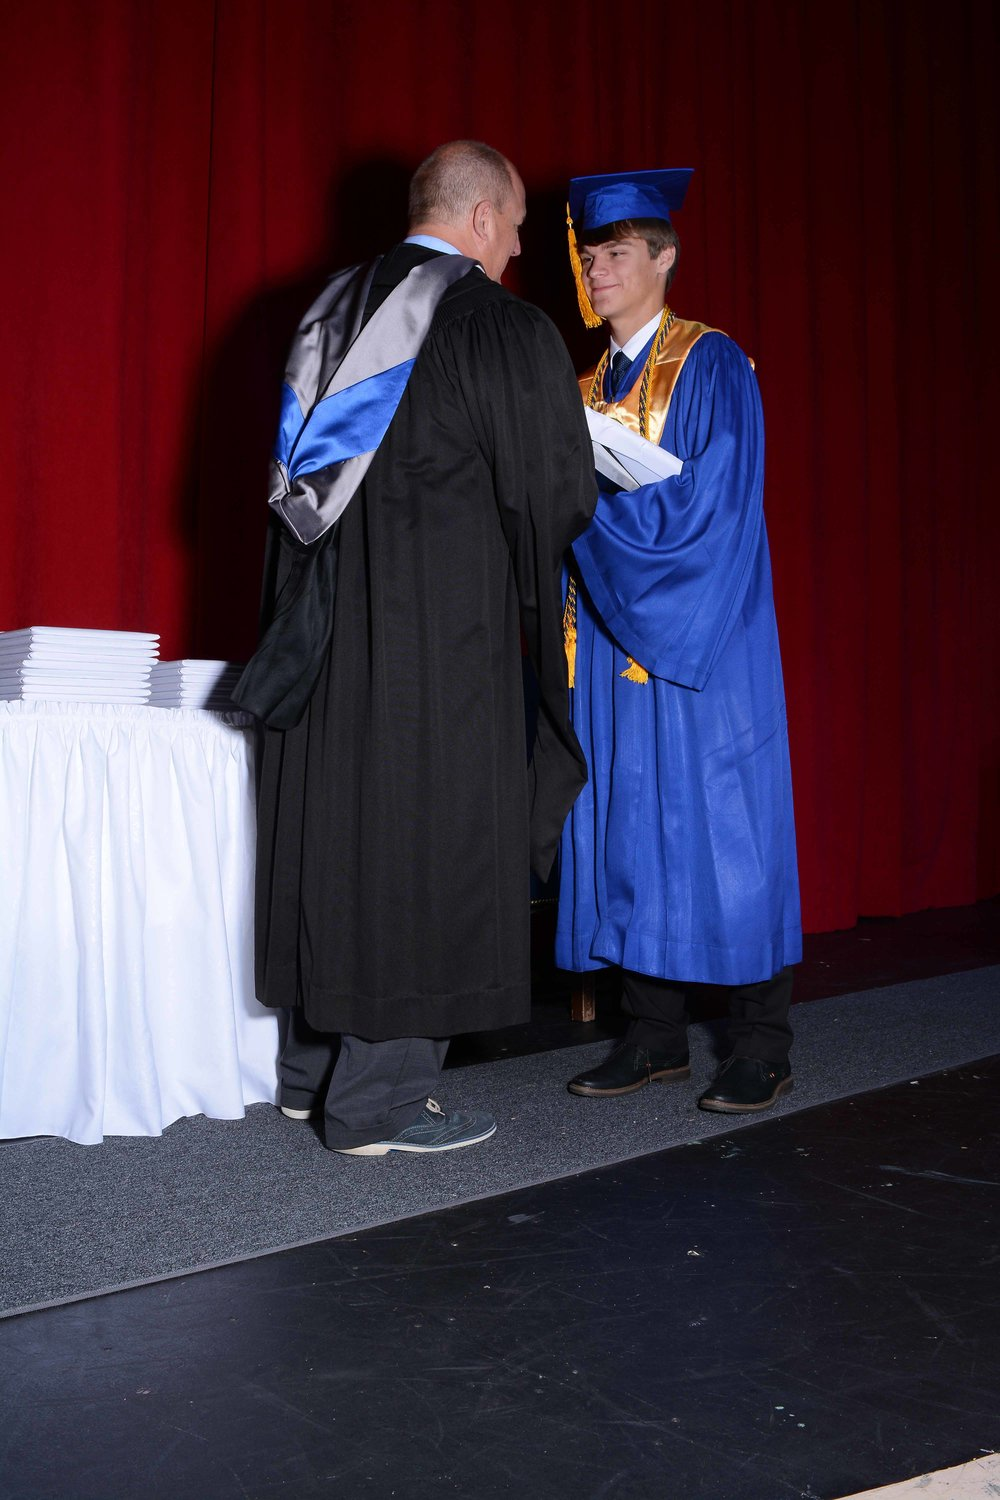 May14 Commencement113.jpg